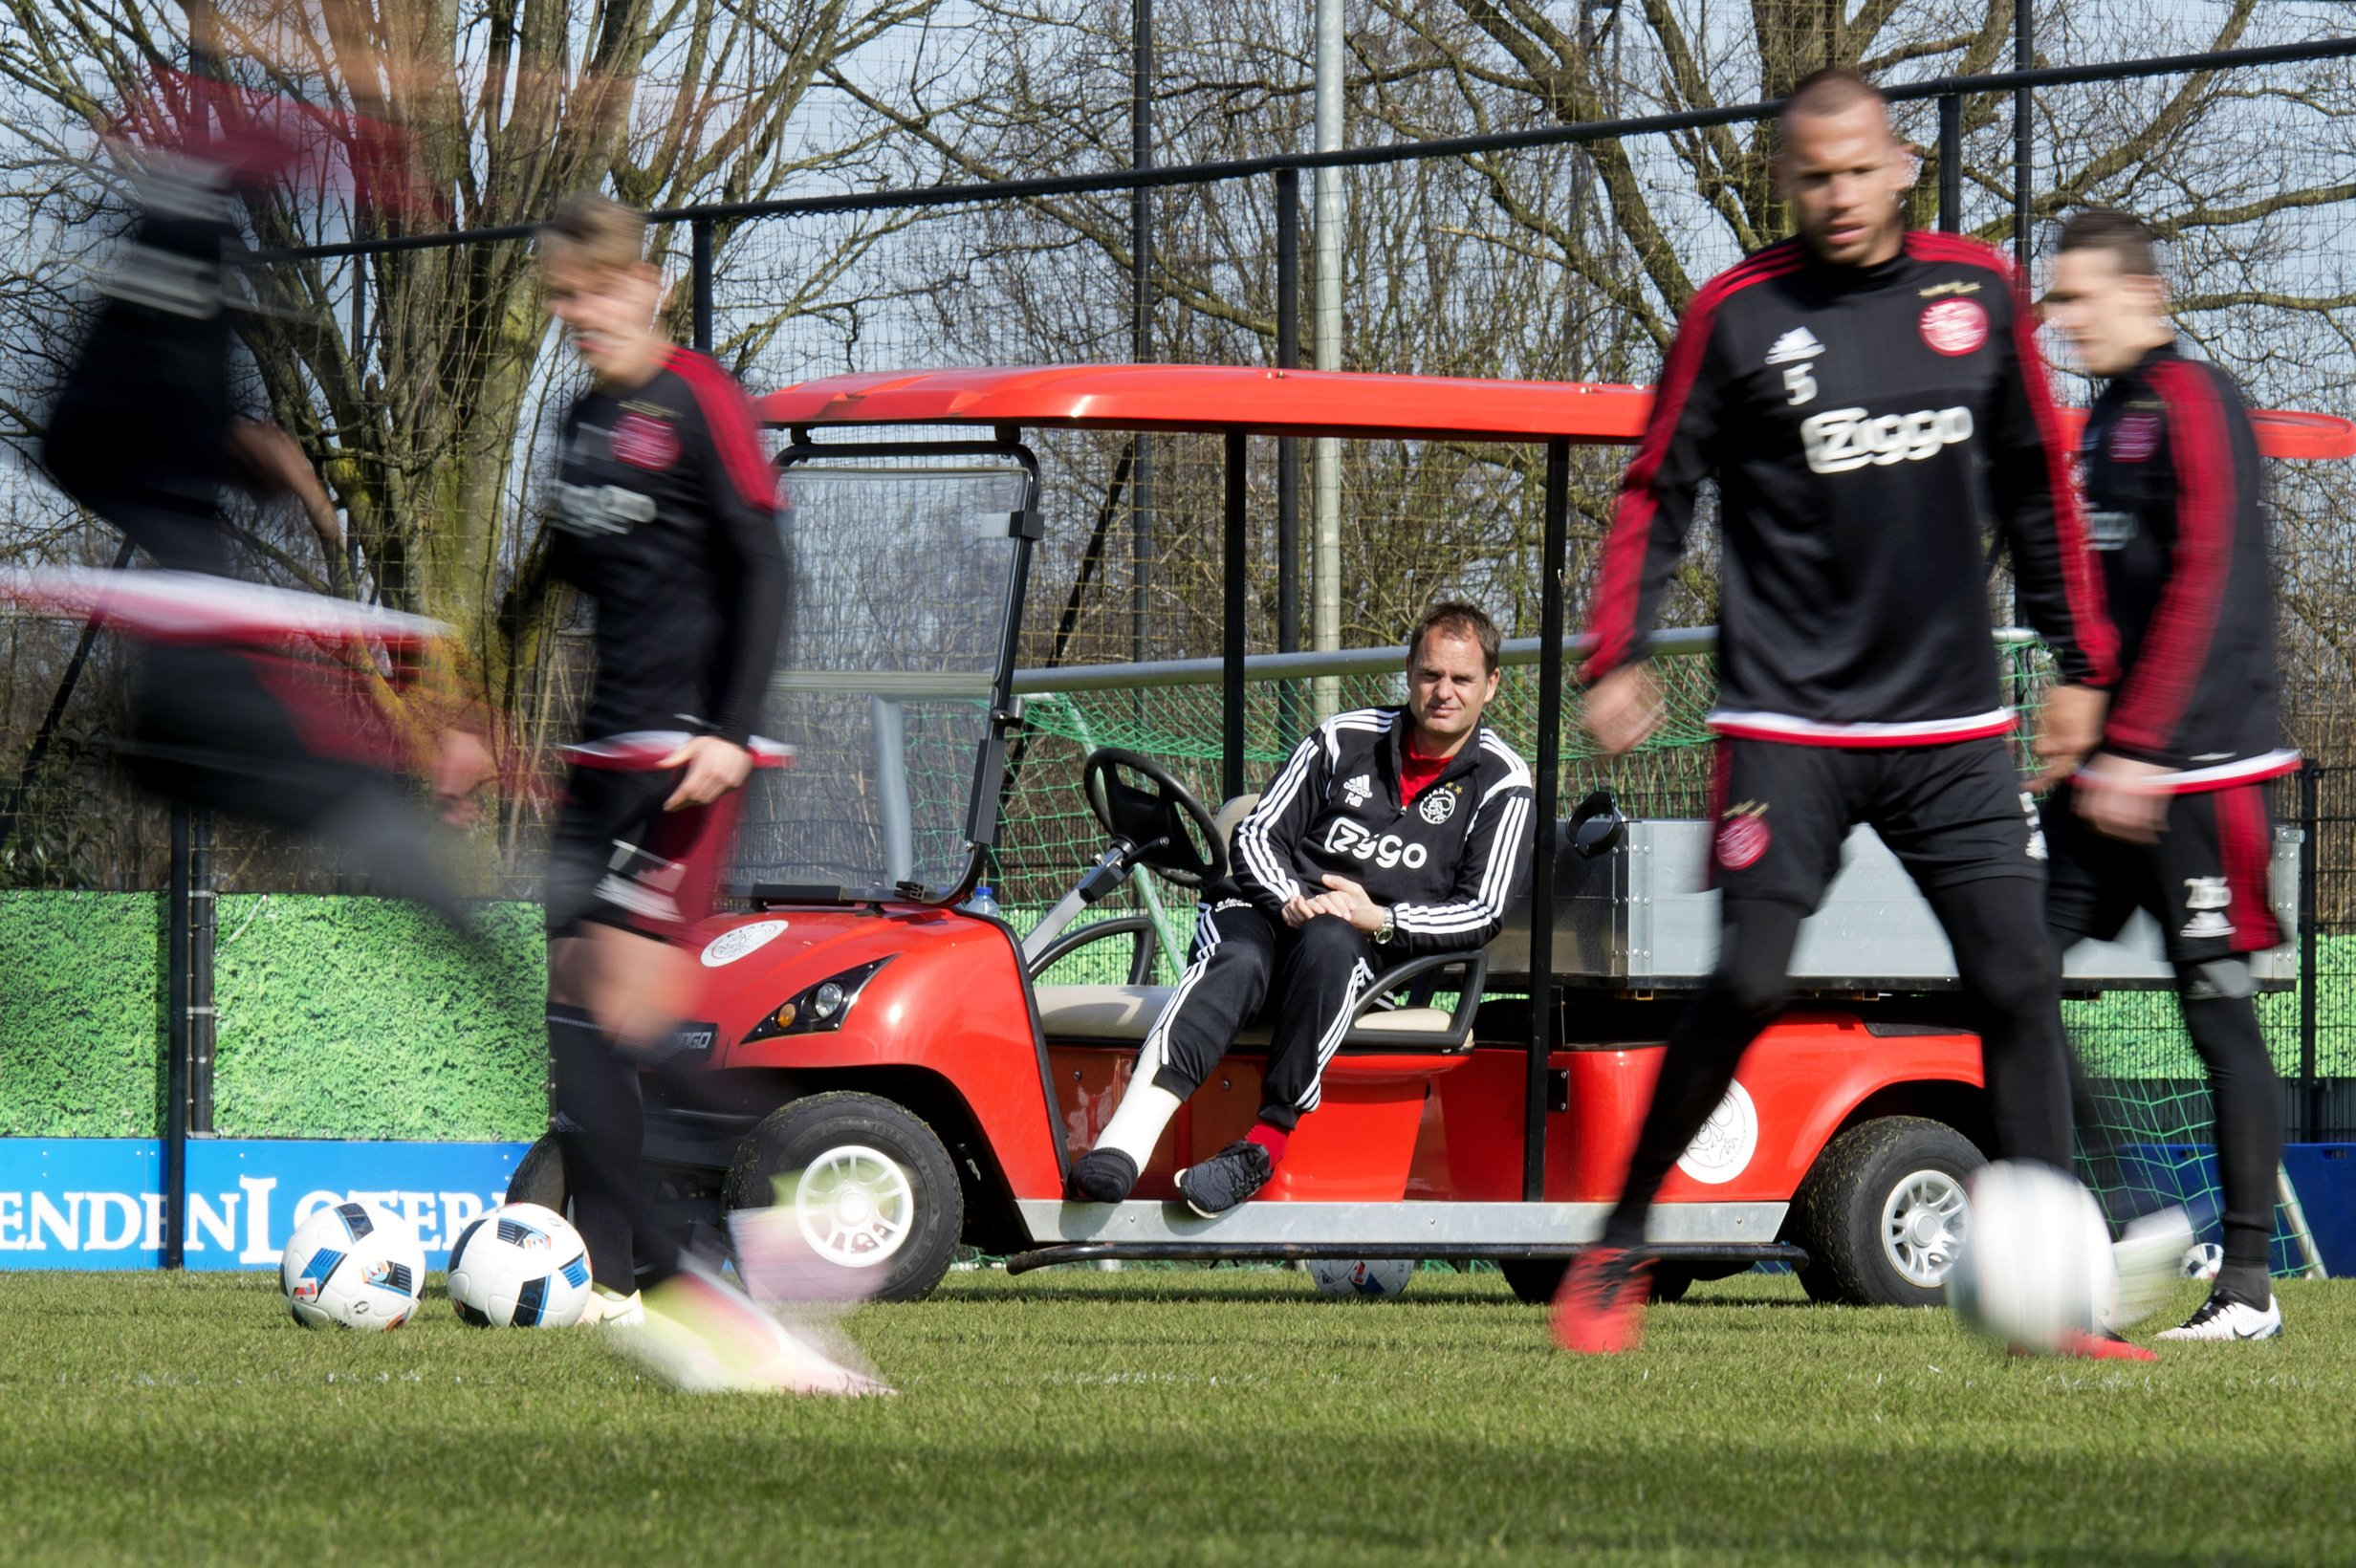 Ajax Amsterdam's head coach Frank De Boer, sitting on a golf cart because of a rupture of the Achilles tendon, attends the training session of his football team, in Amsterdam, on April 1, 2016. / AFP / ANP / OLAF KRAAK / Netherlands OUT (Photo credit should read OLAF KRAAK/AFP/Getty Images)